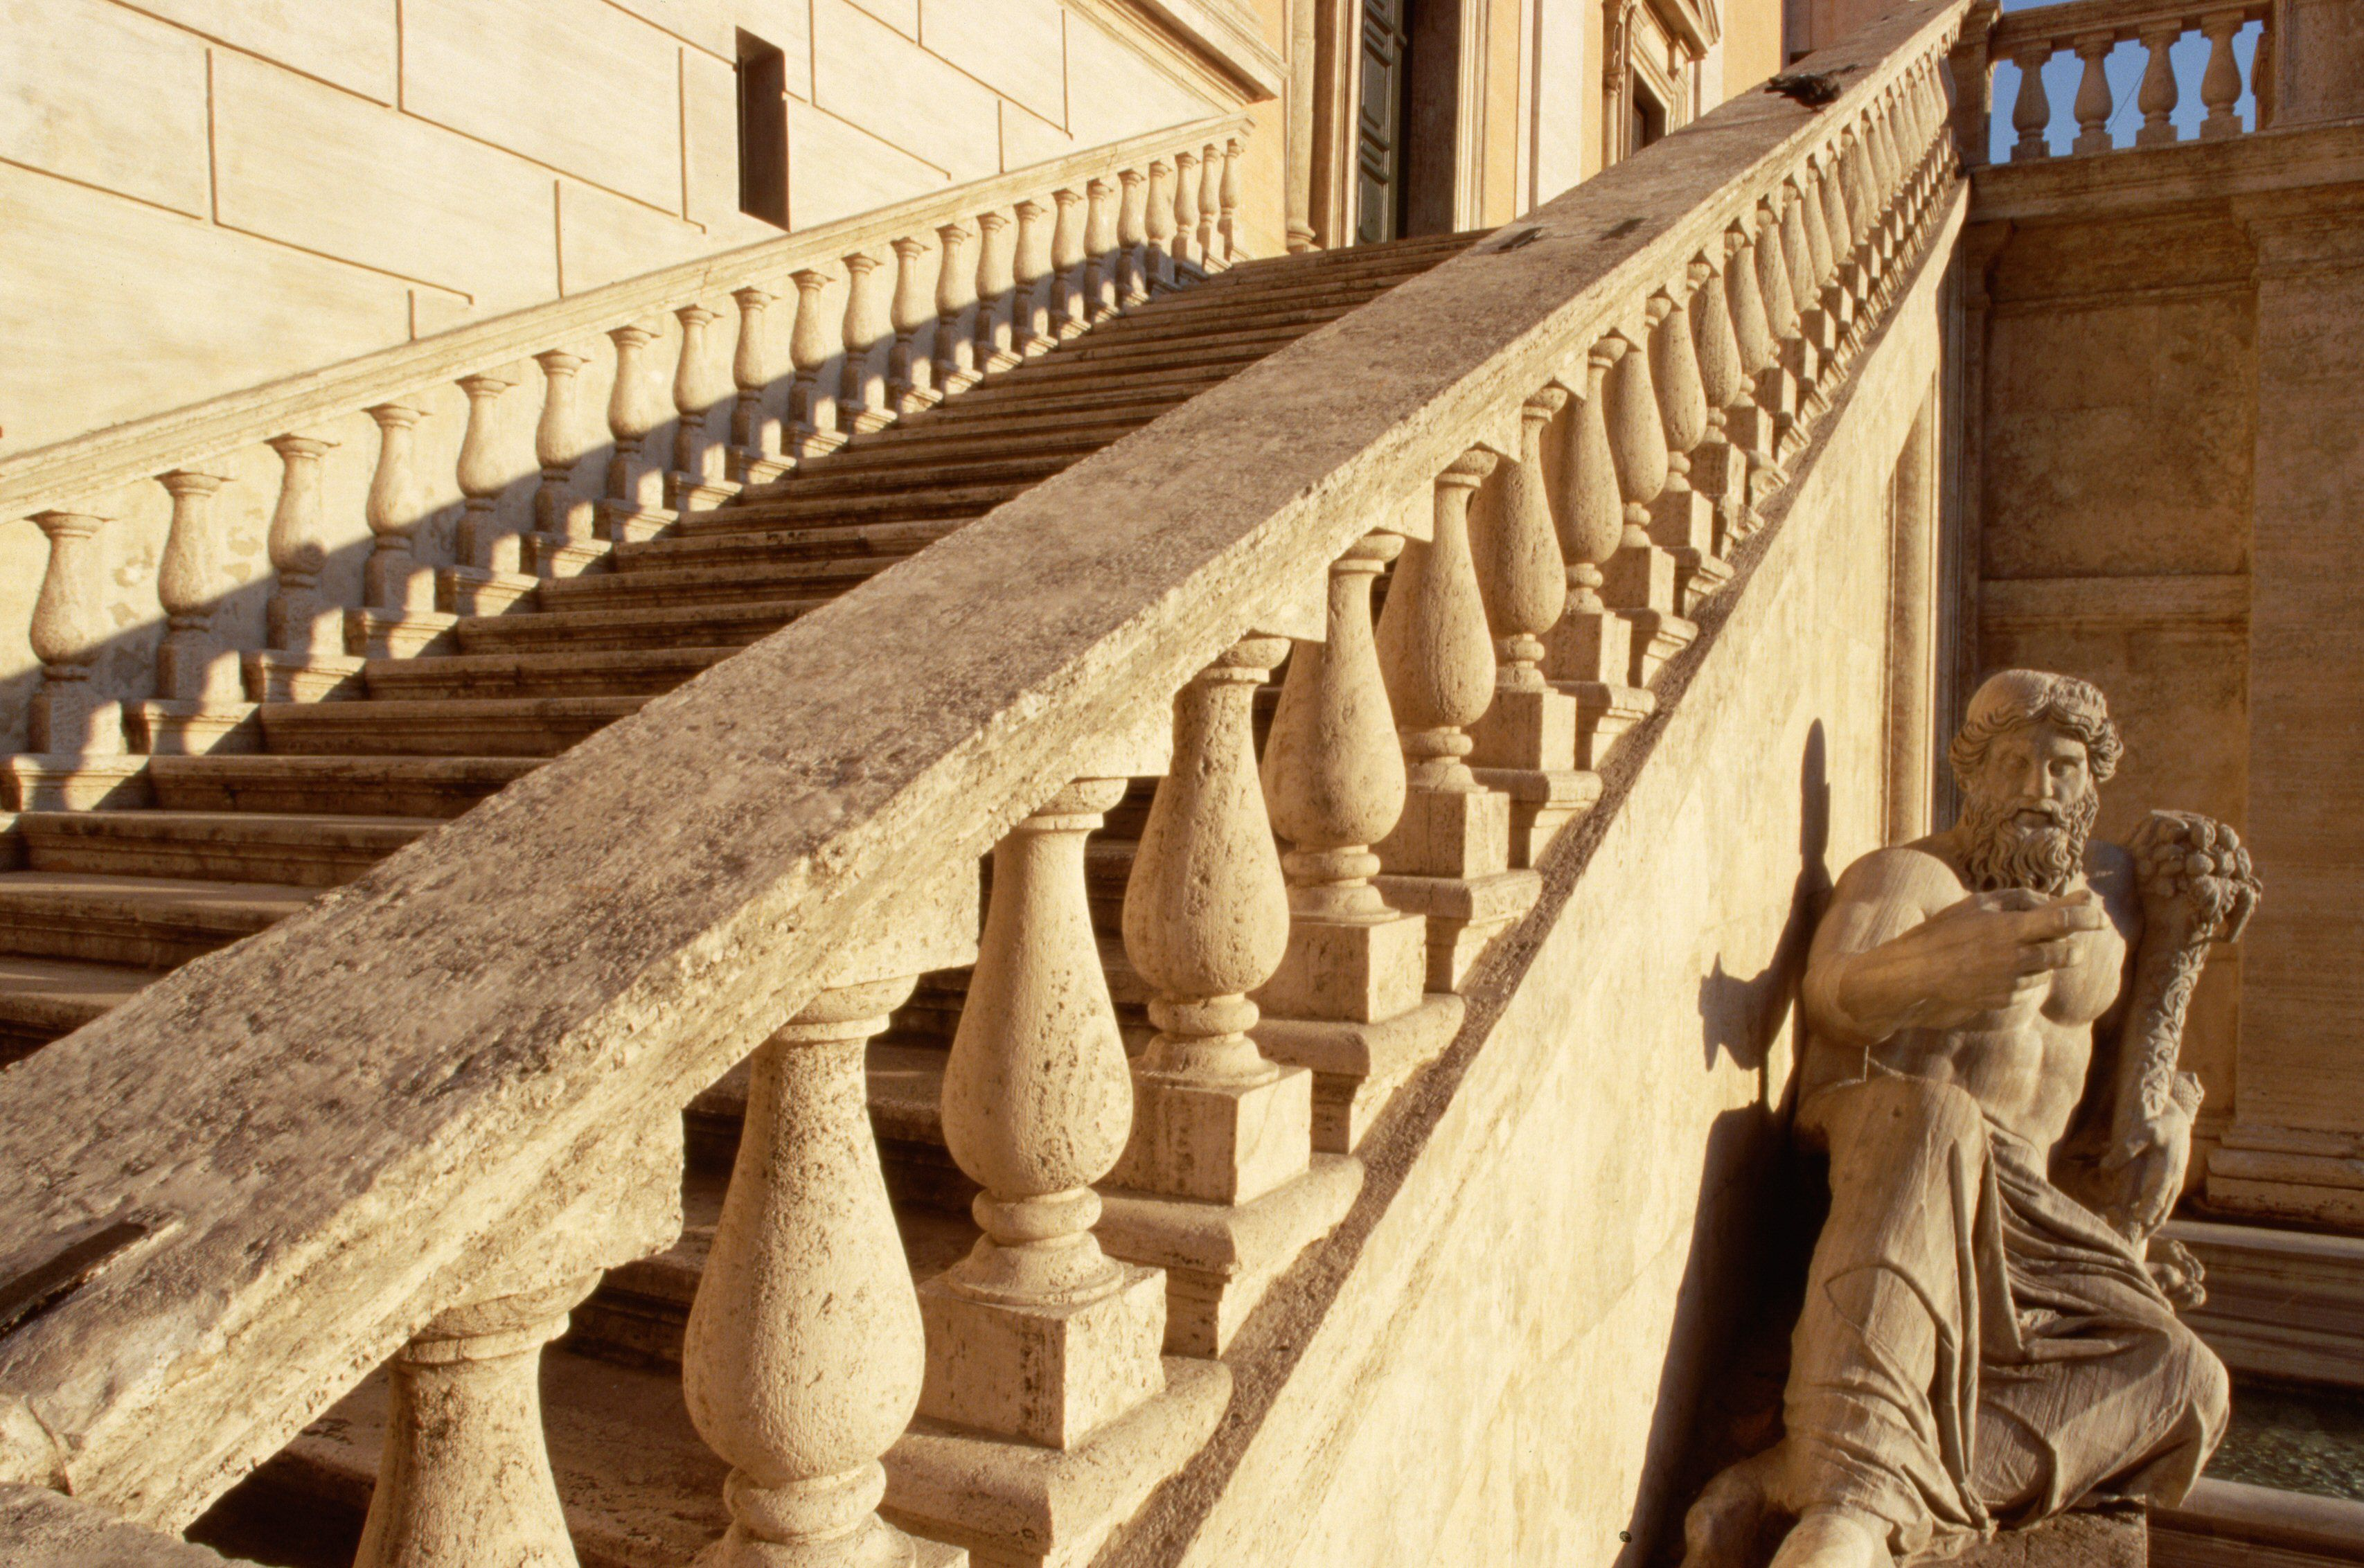 decorative wood railing sytem for indoor stairsfloor.htm everything to know about banisters and balusters  banisters and balusters